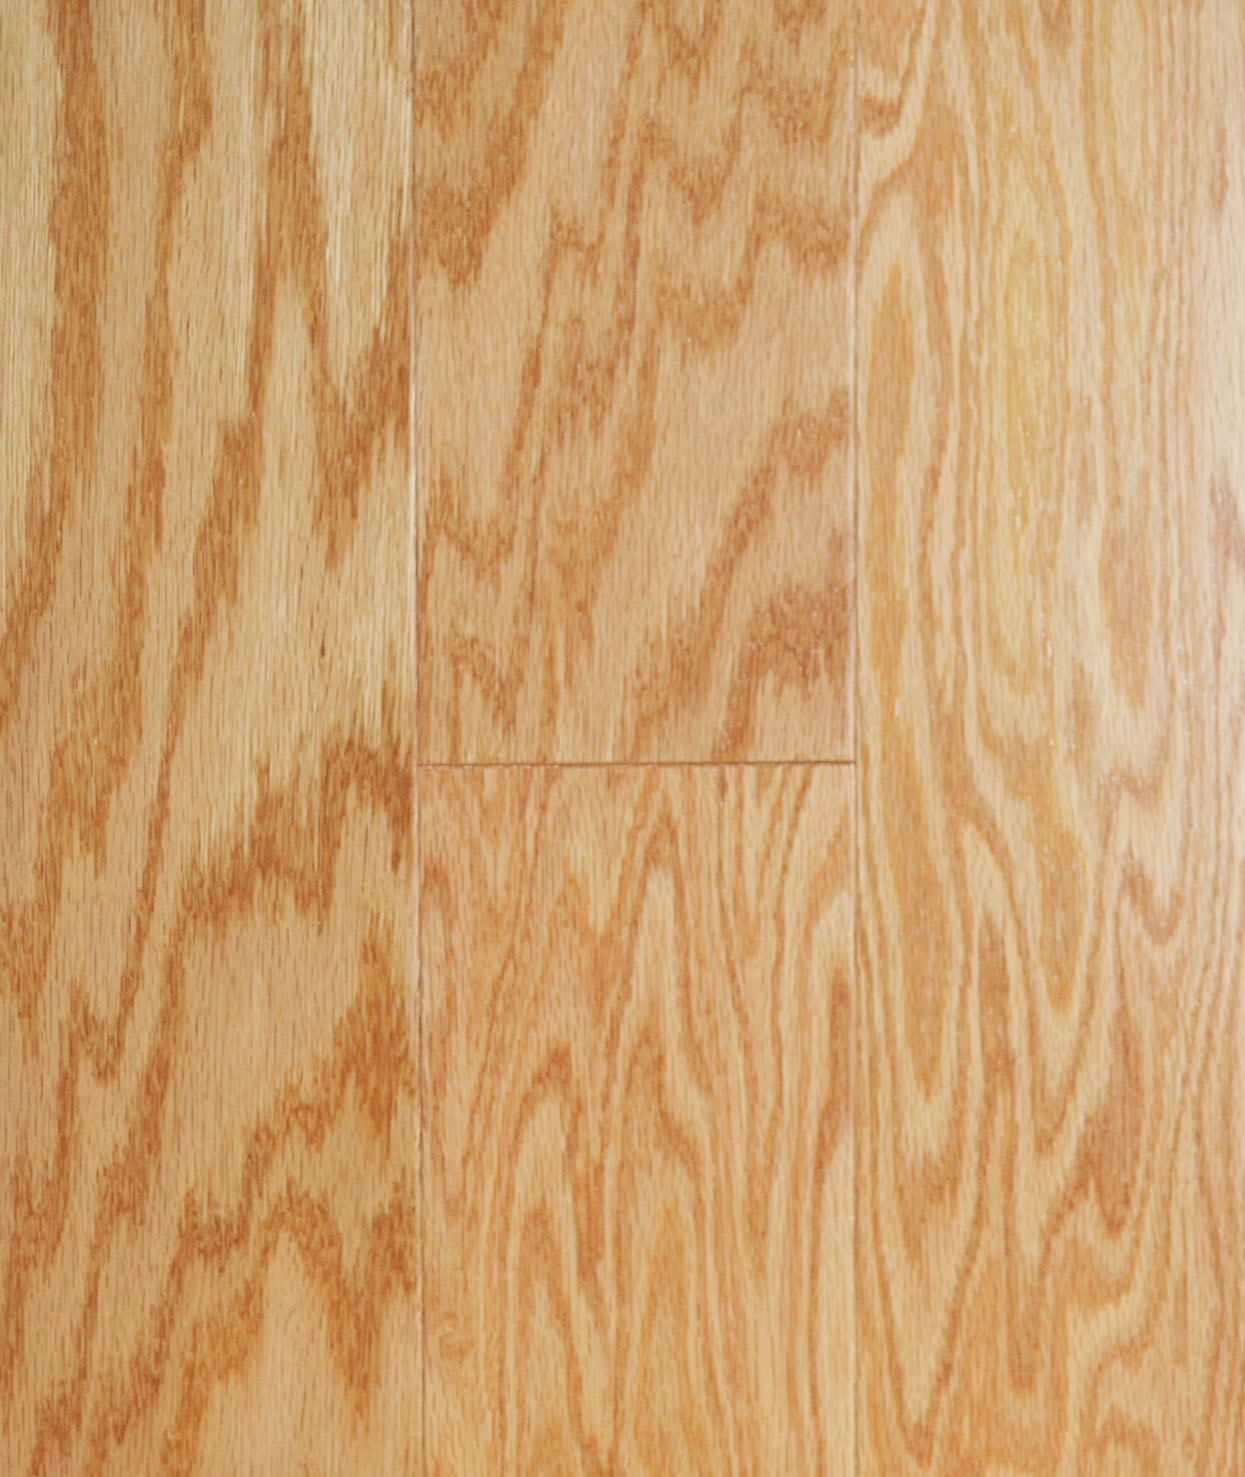 Lm flooring gevaldo natural red oak hardwood flooring 5 x for Natural red oak floors